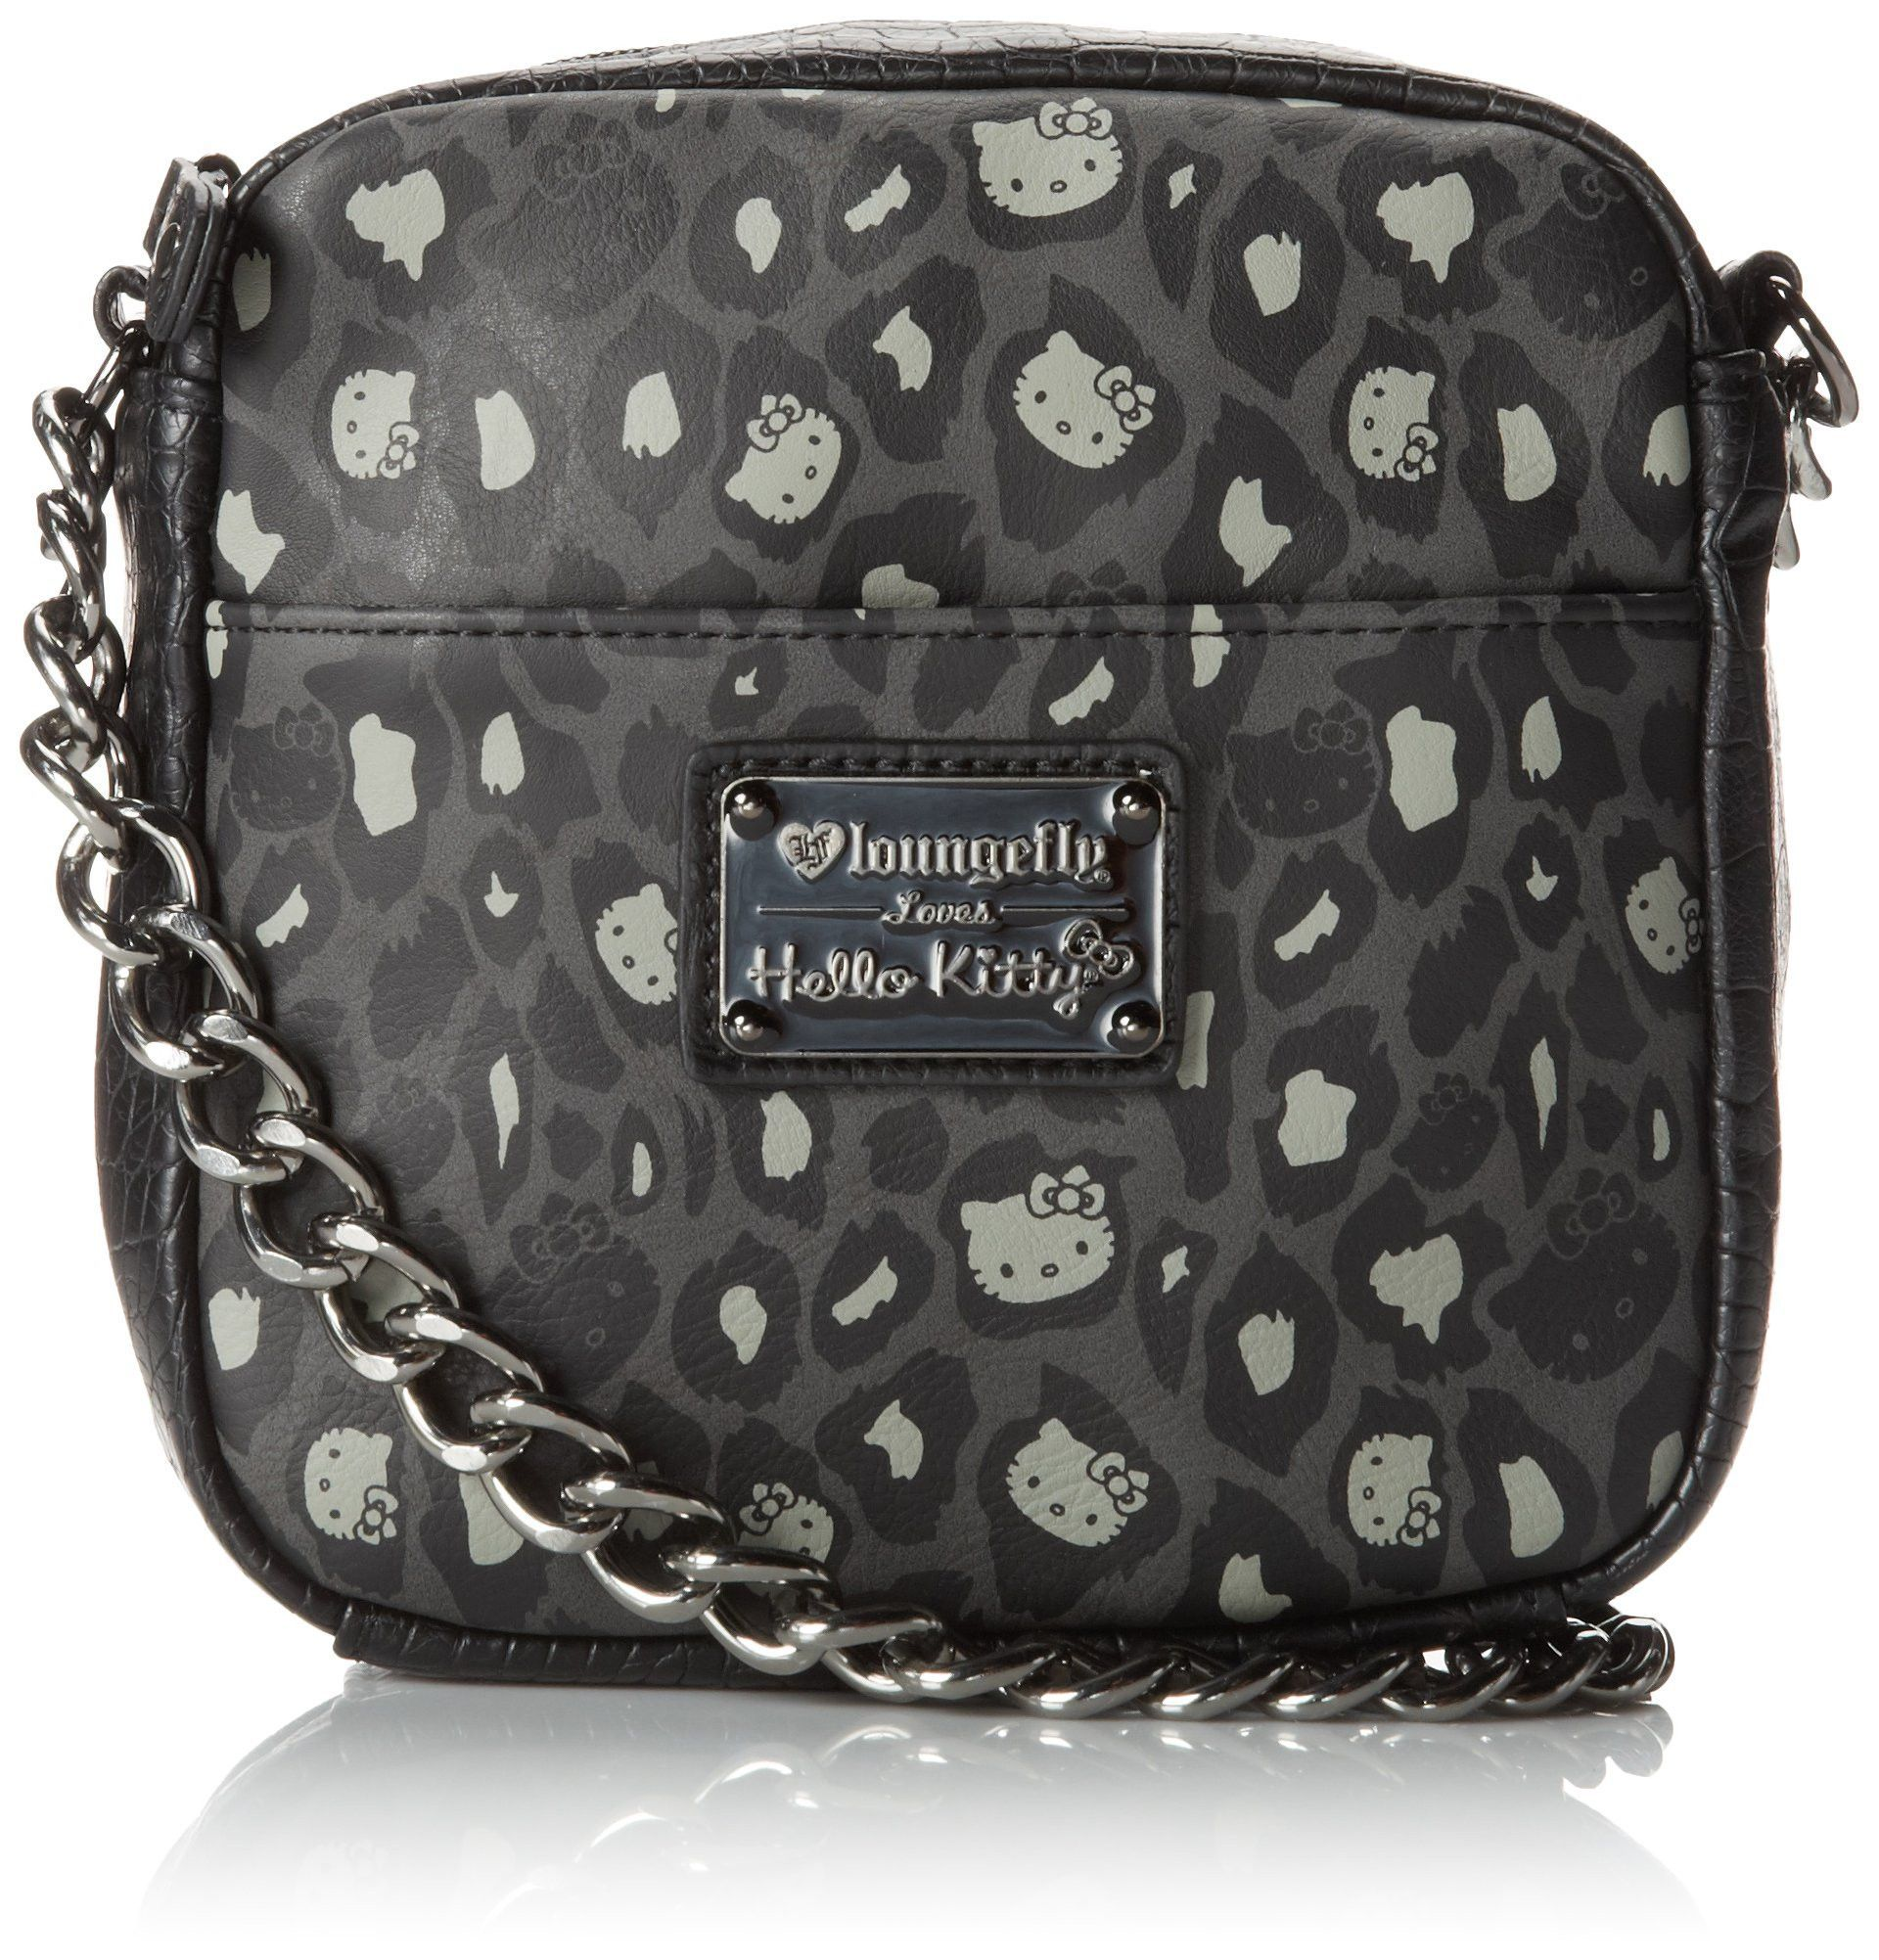 790a48d16d57 Hello Kitty Hello Kitty Black Grey Leopard Print Chain Cross Body ...